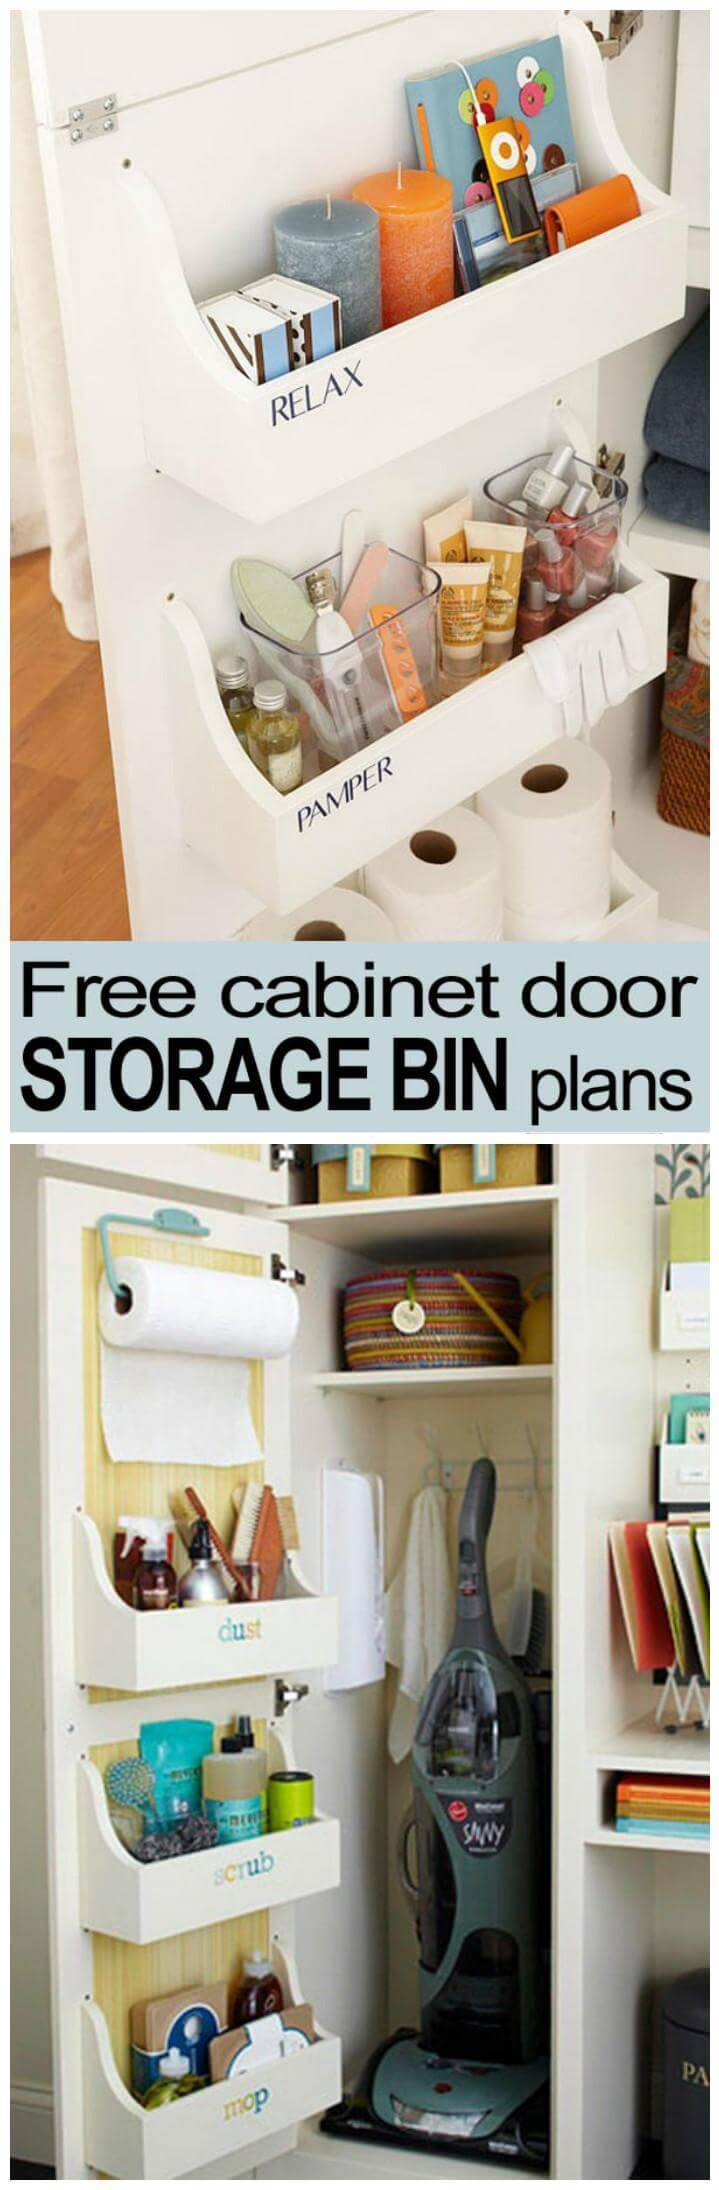 DIY cabinet door storage bin